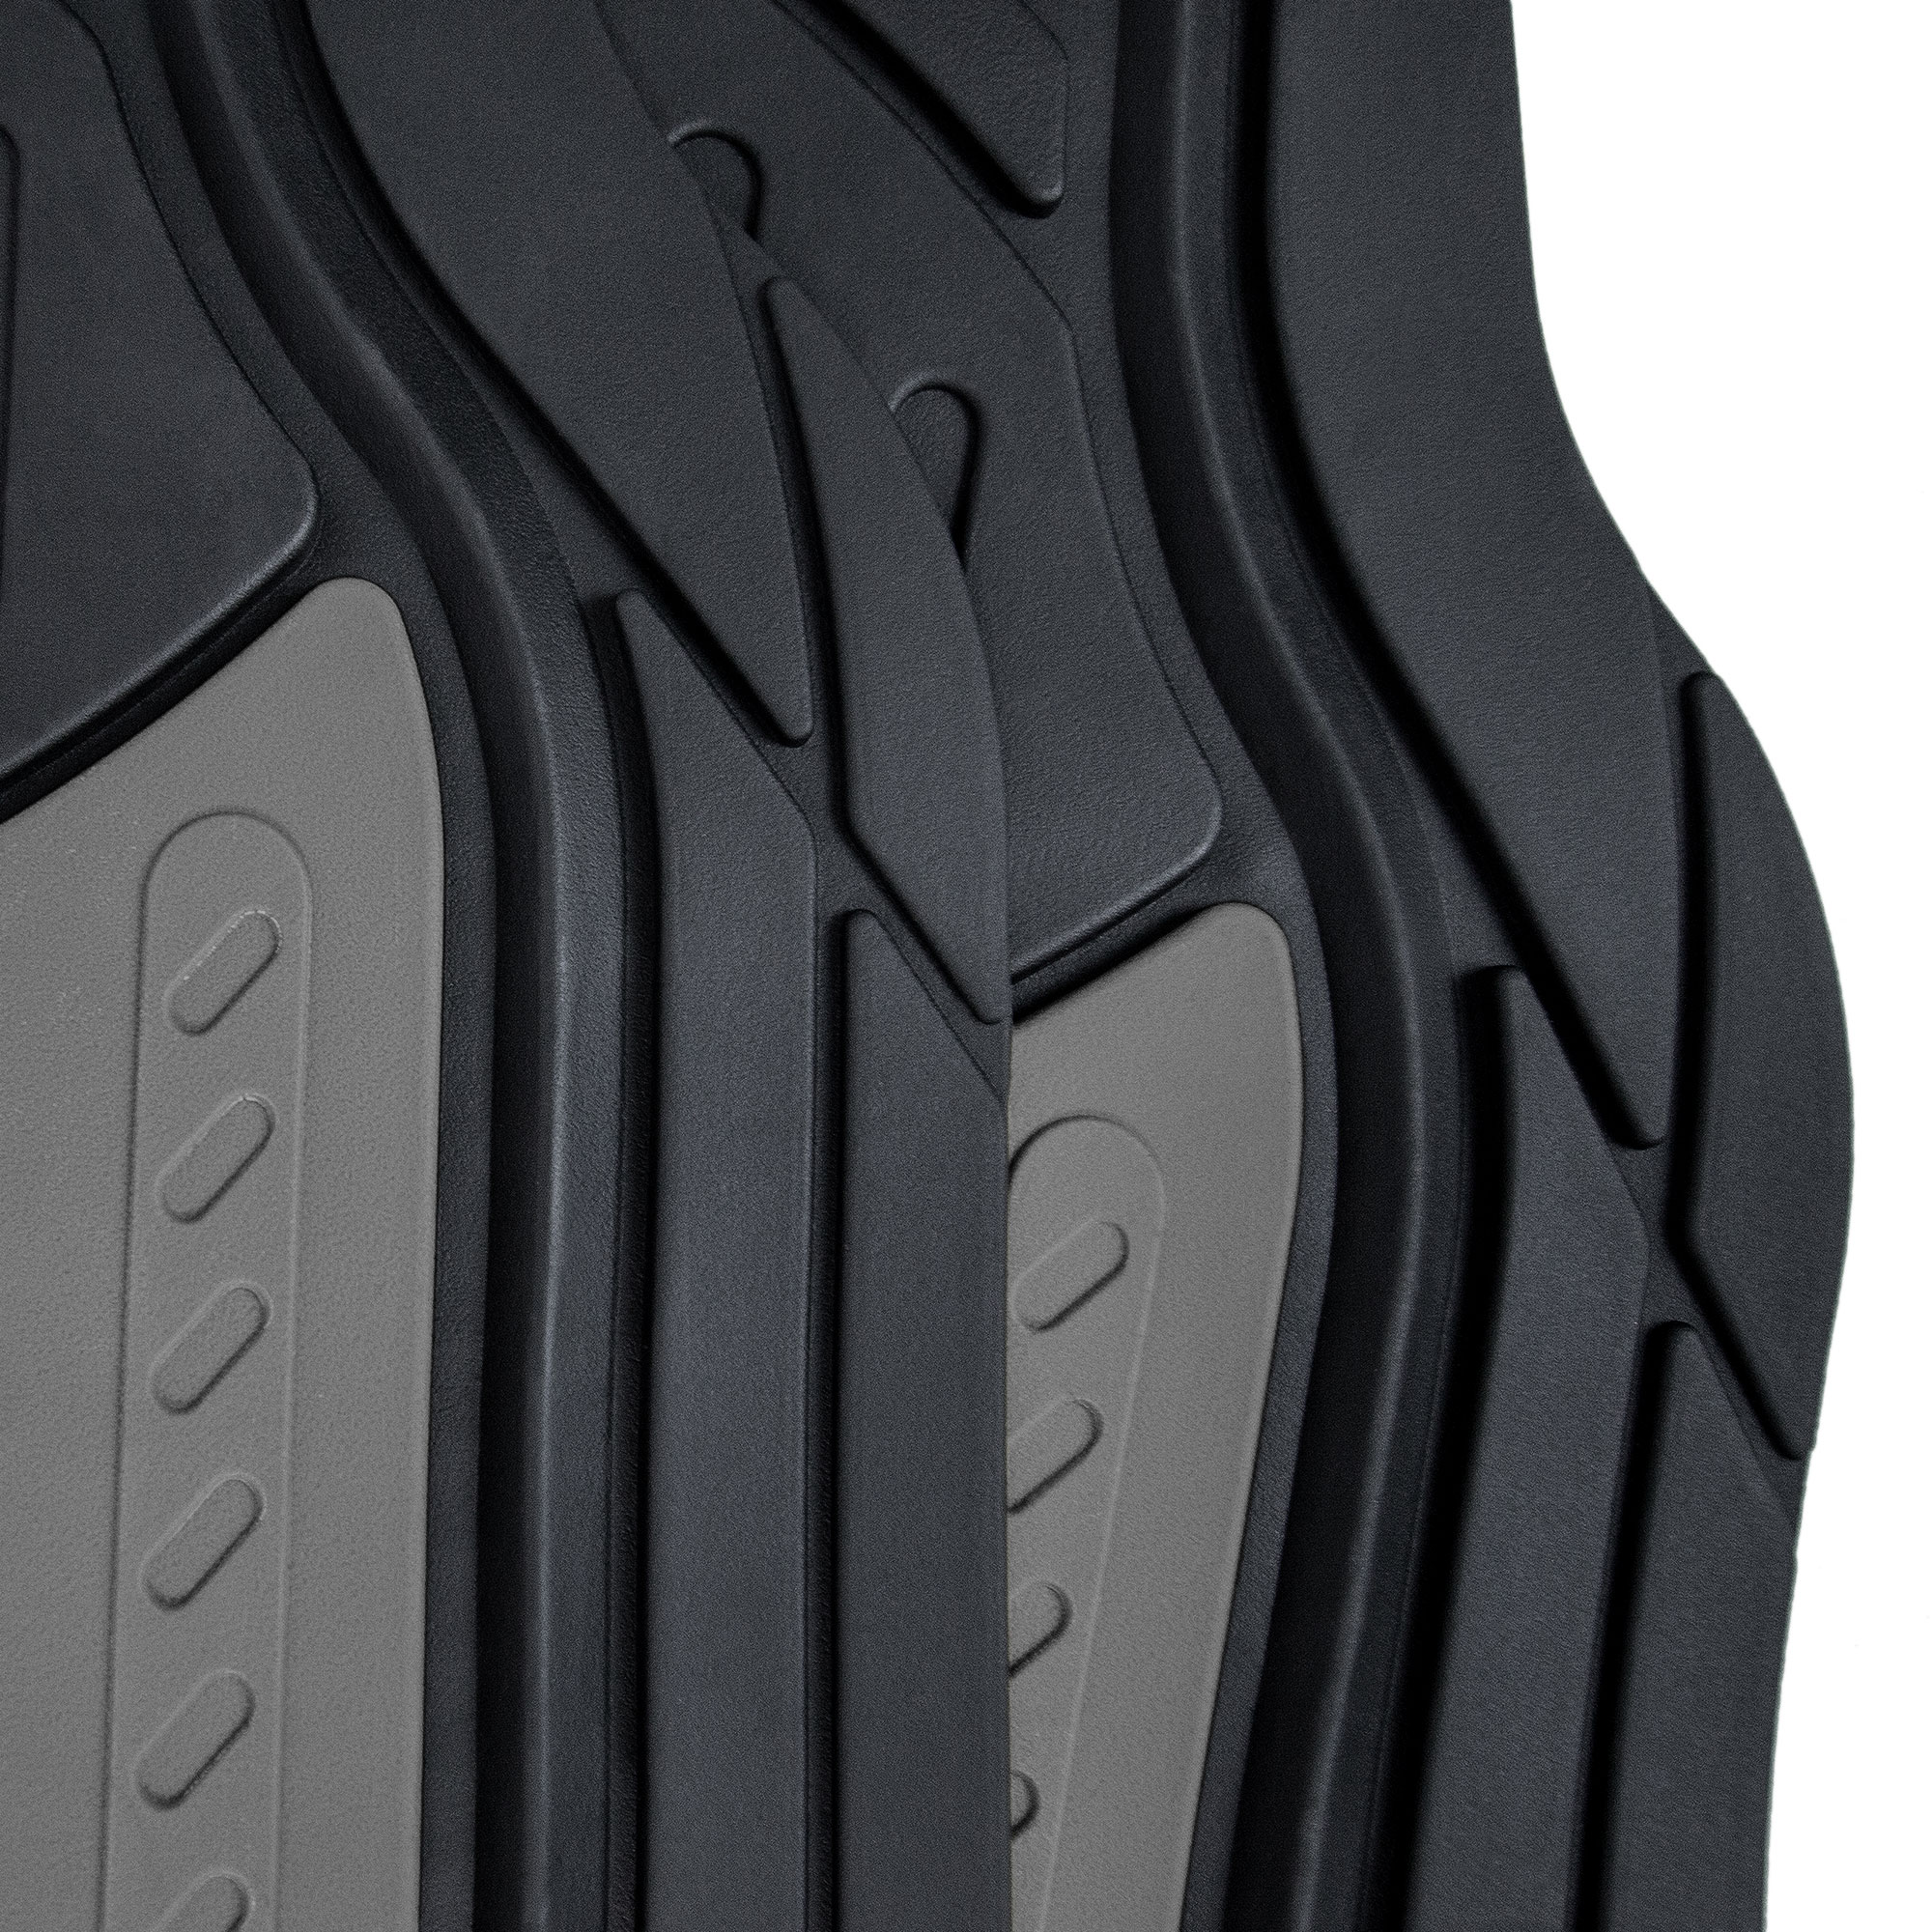 Car-Floor-Mats-for-All-Weather-Rubber-2-Tone-Design-4pc-Set-Heavy-Duty thumbnail 21